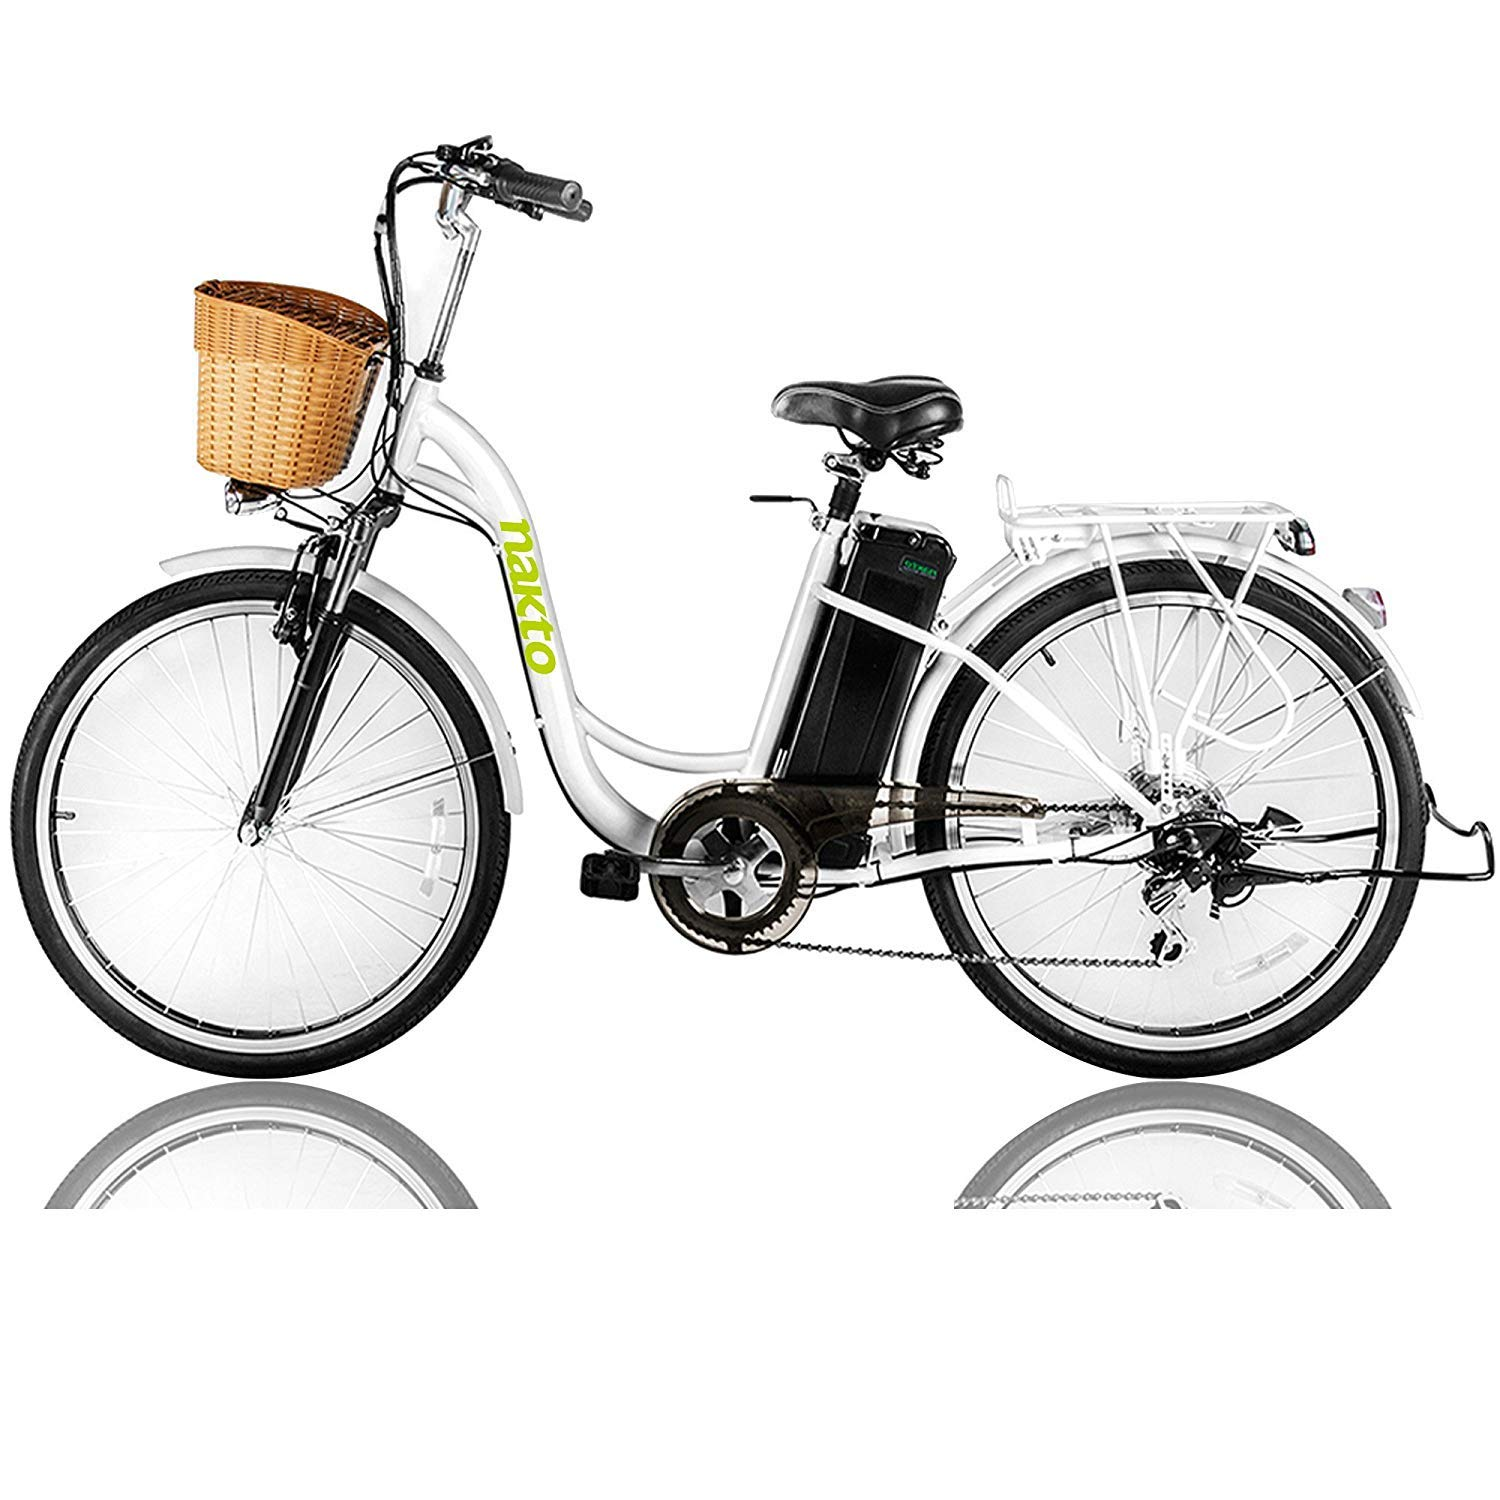 ed77edd3b18 NAKTO Electric Bicycle Sporting Shimano 6 Speed Gear EBike with Removable  36V10A Lithium Battery